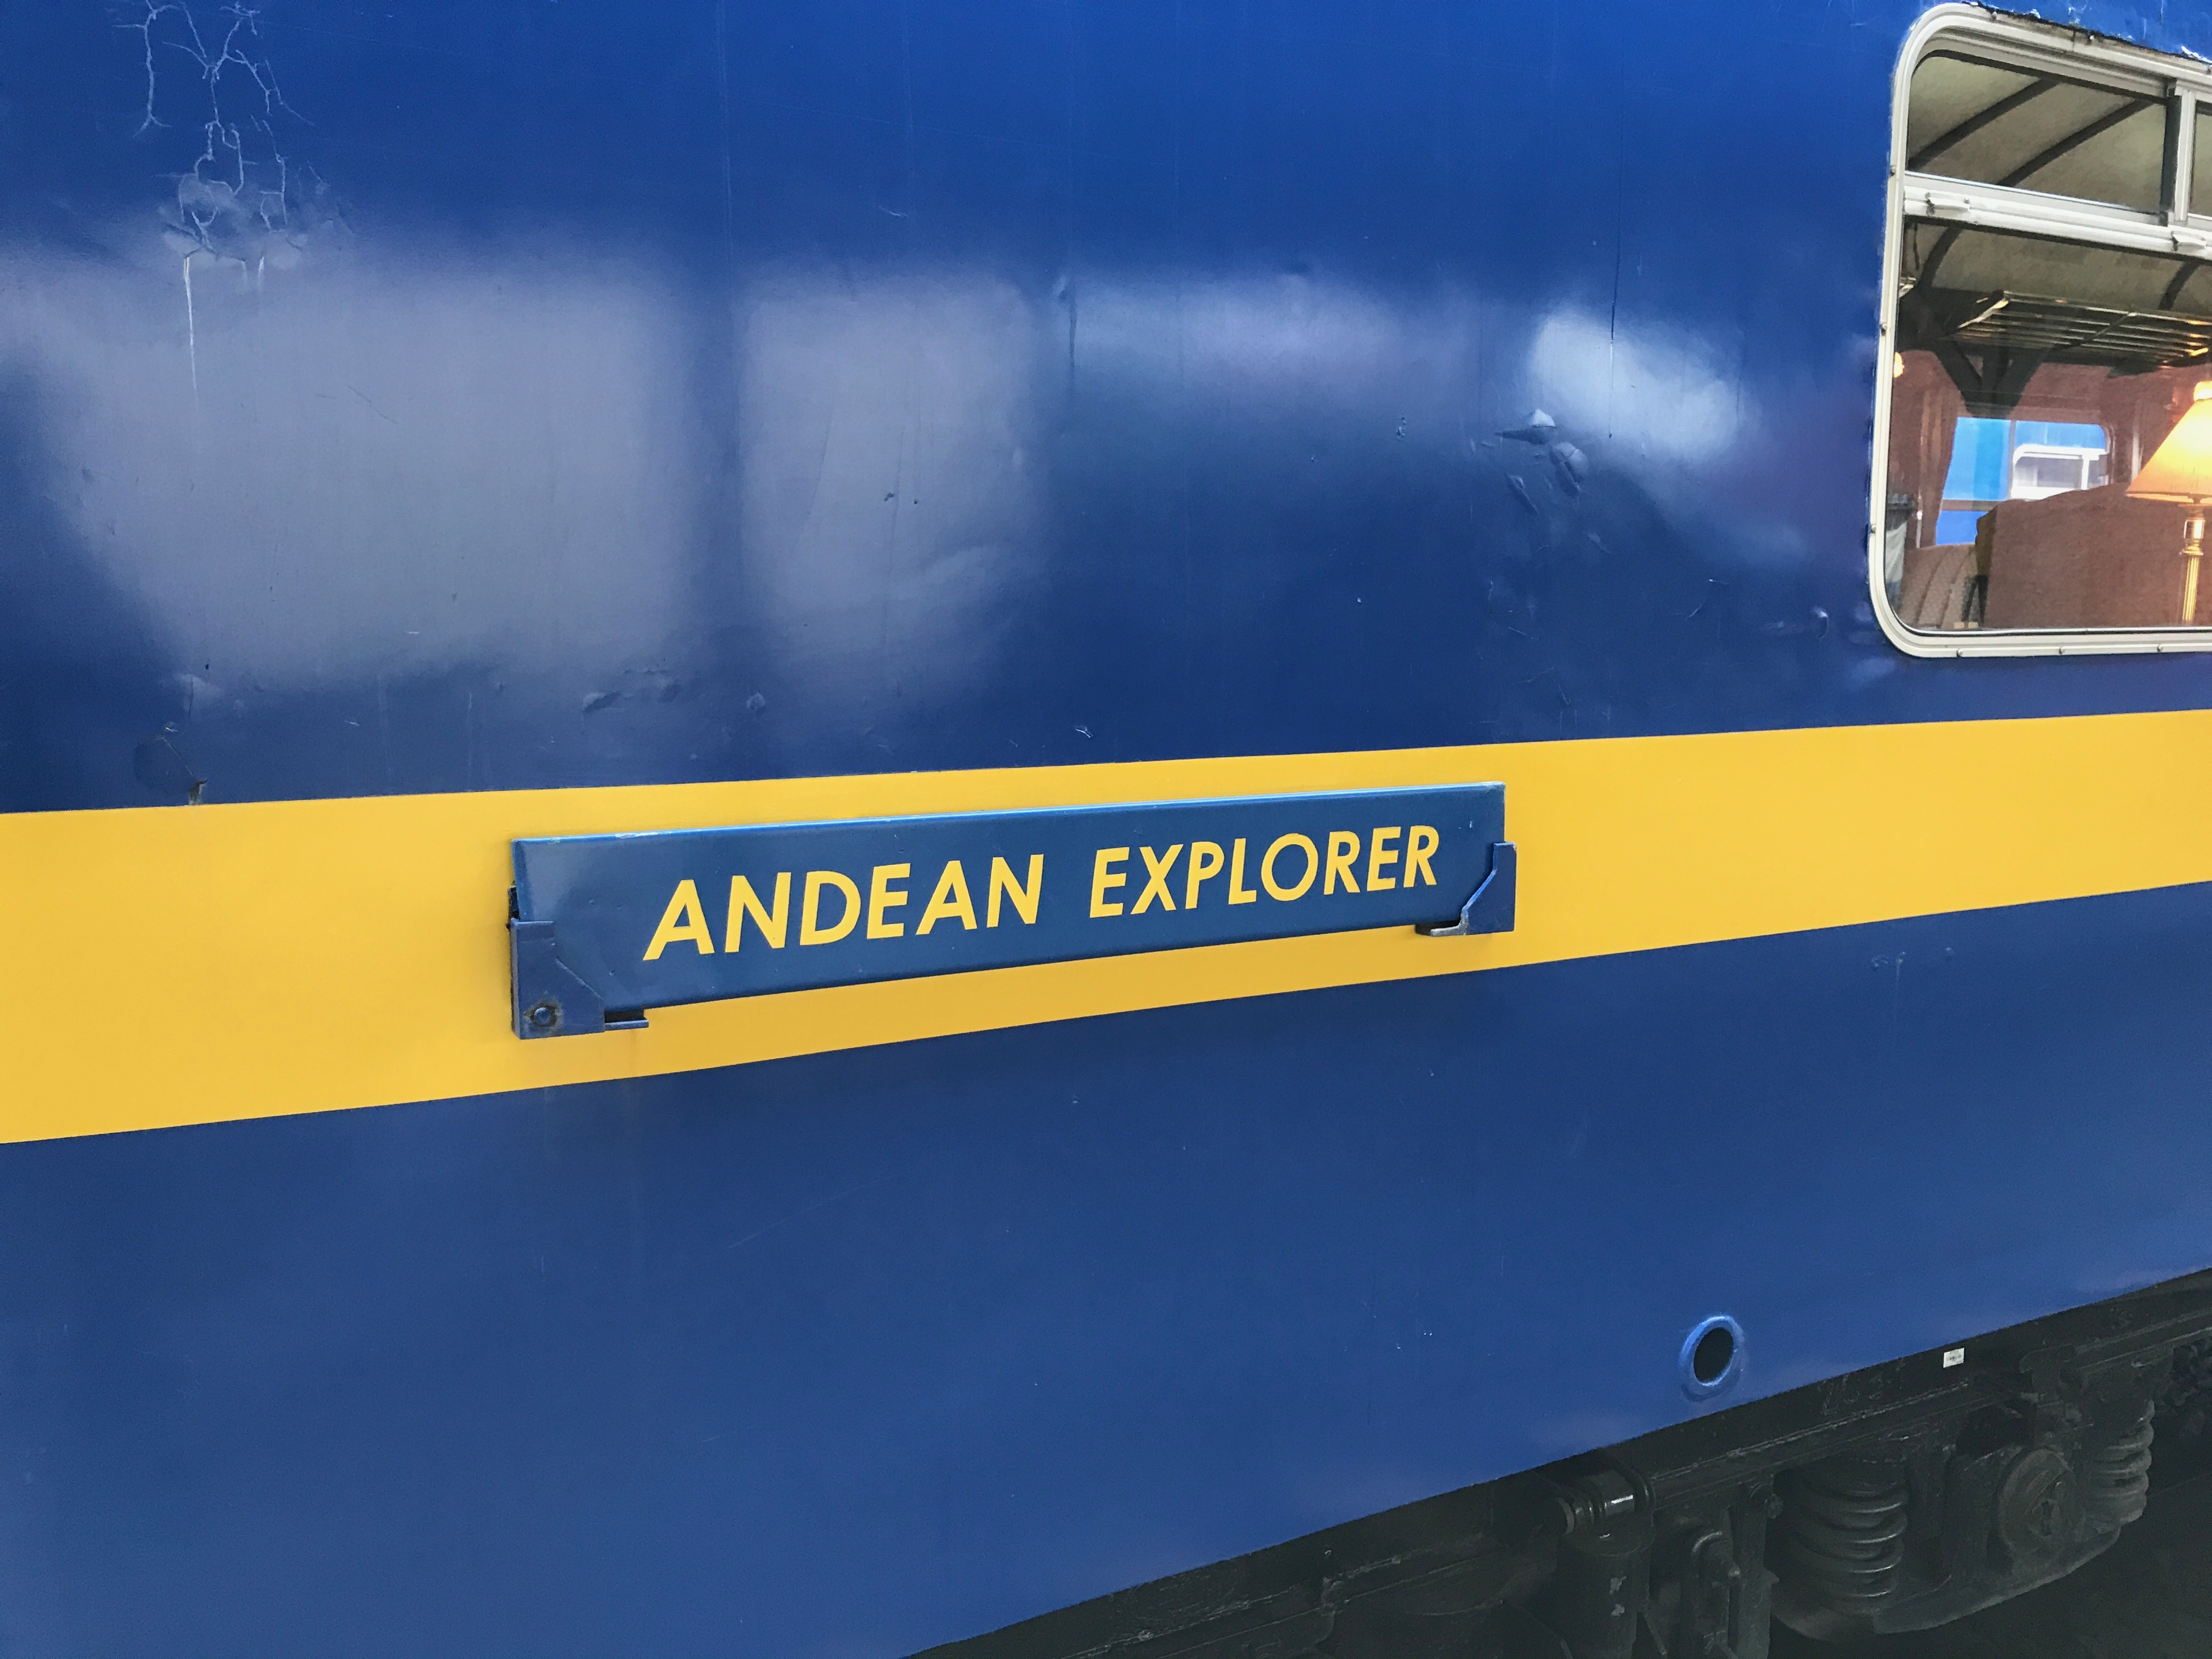 Andean Explorer sign